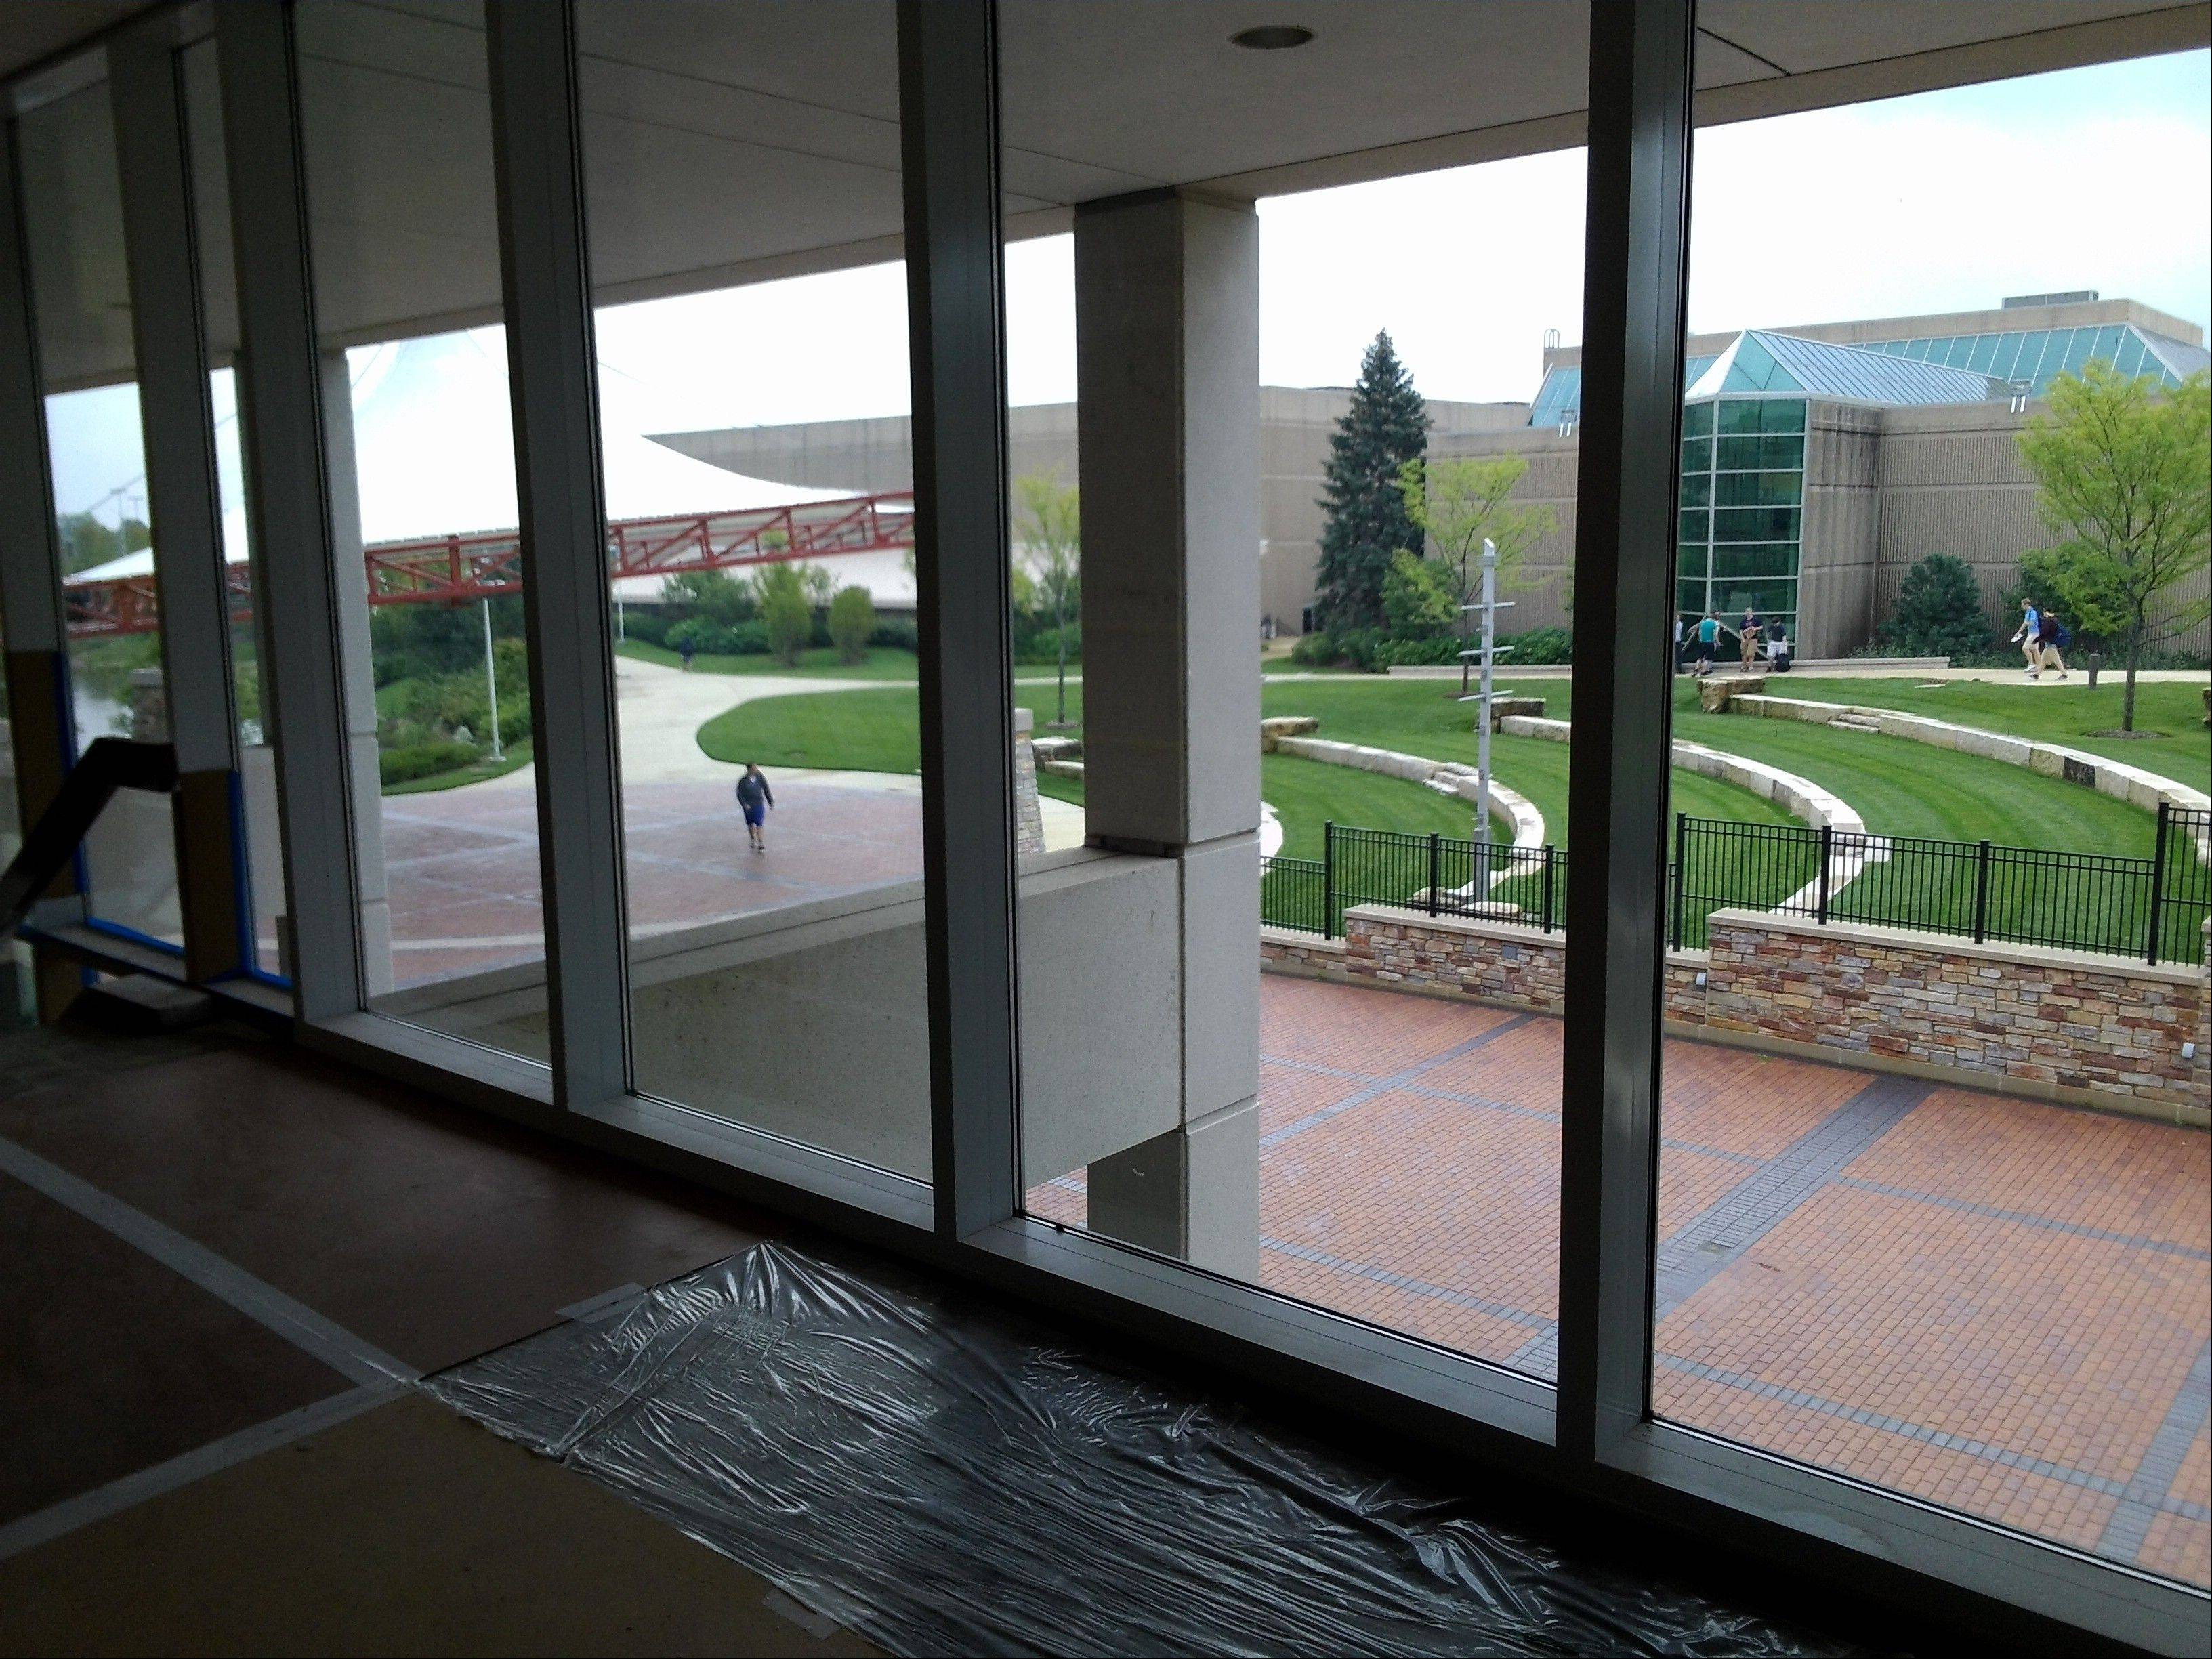 The new outdoor patio stage is one of the many aspects of the $35 million renovation of the McAninch Arts Center at the College of DuPage in Glen Ellyn.